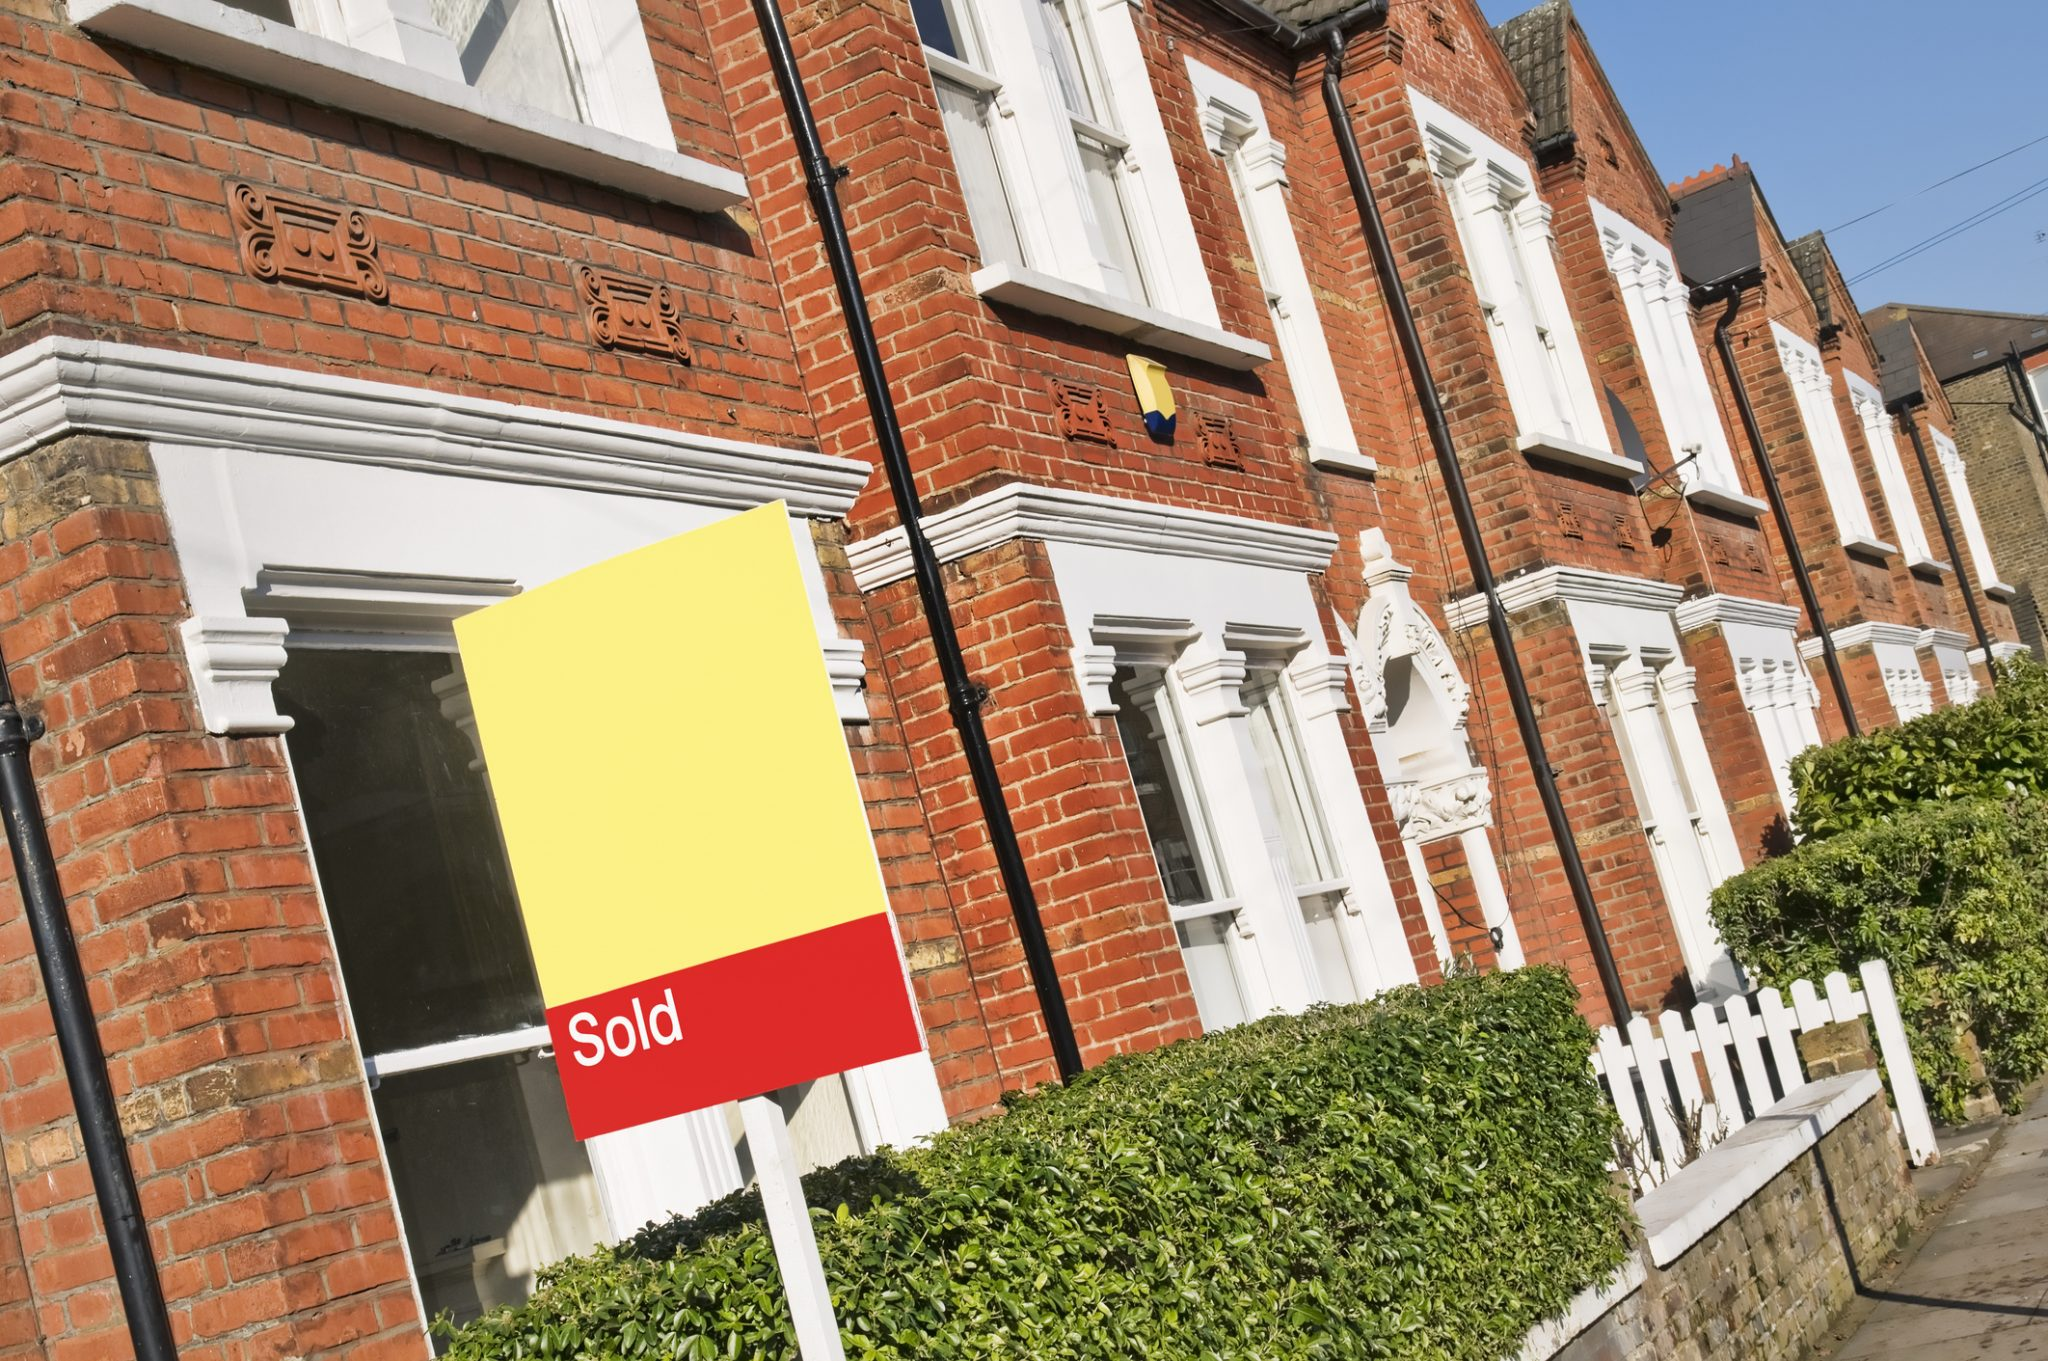 The UK property market accelerates to record-breaking levels